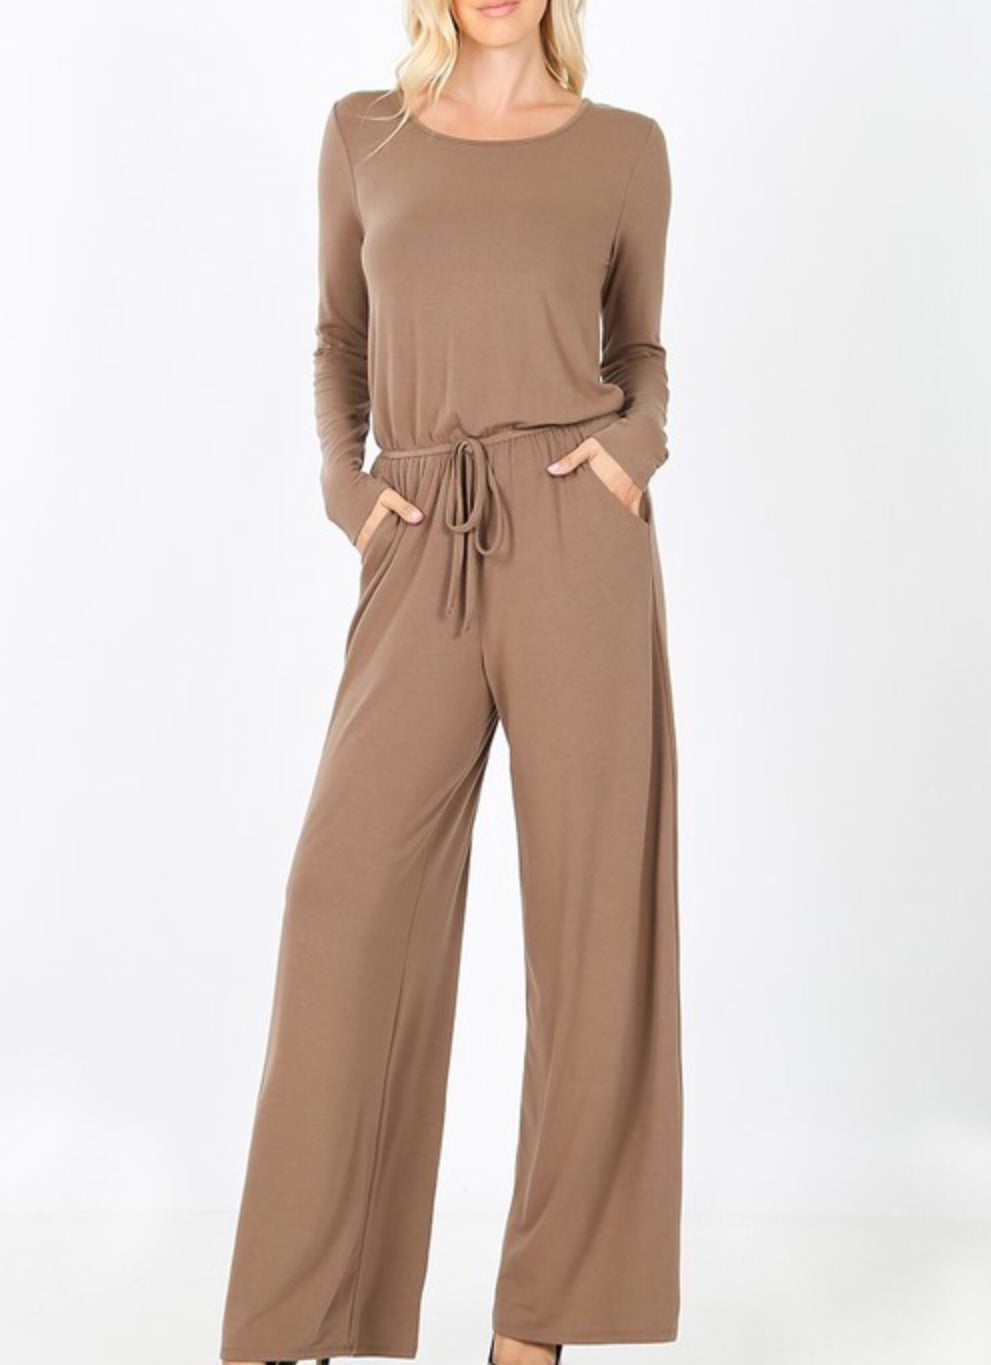 Simply Sassy Jumpsuit